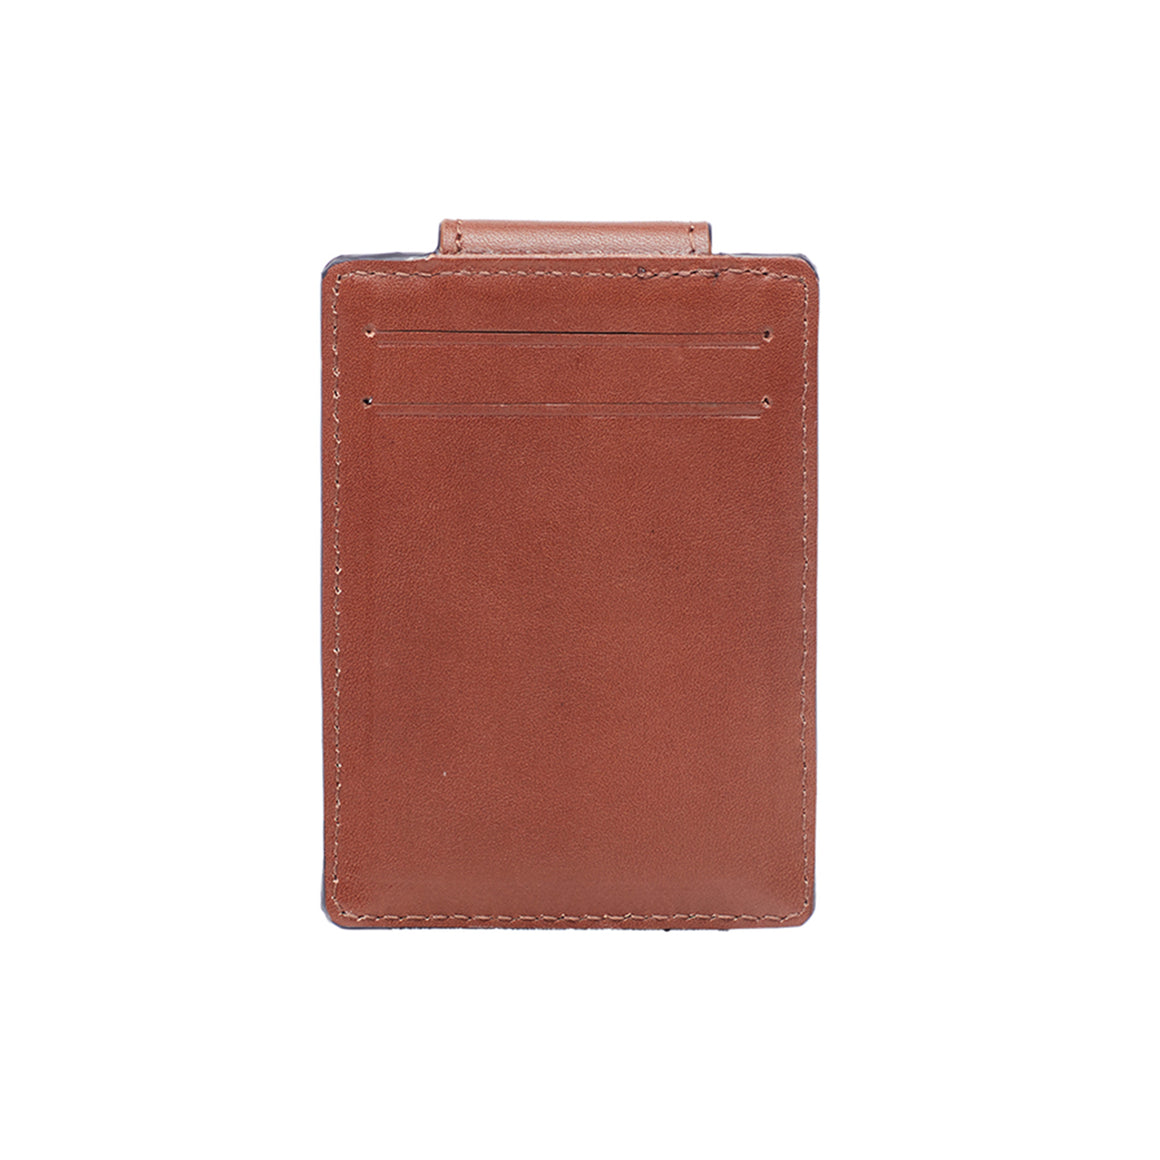 WT 0042 - TOHL VECCHIA MEN'S WALLET - VINTAGE TAN